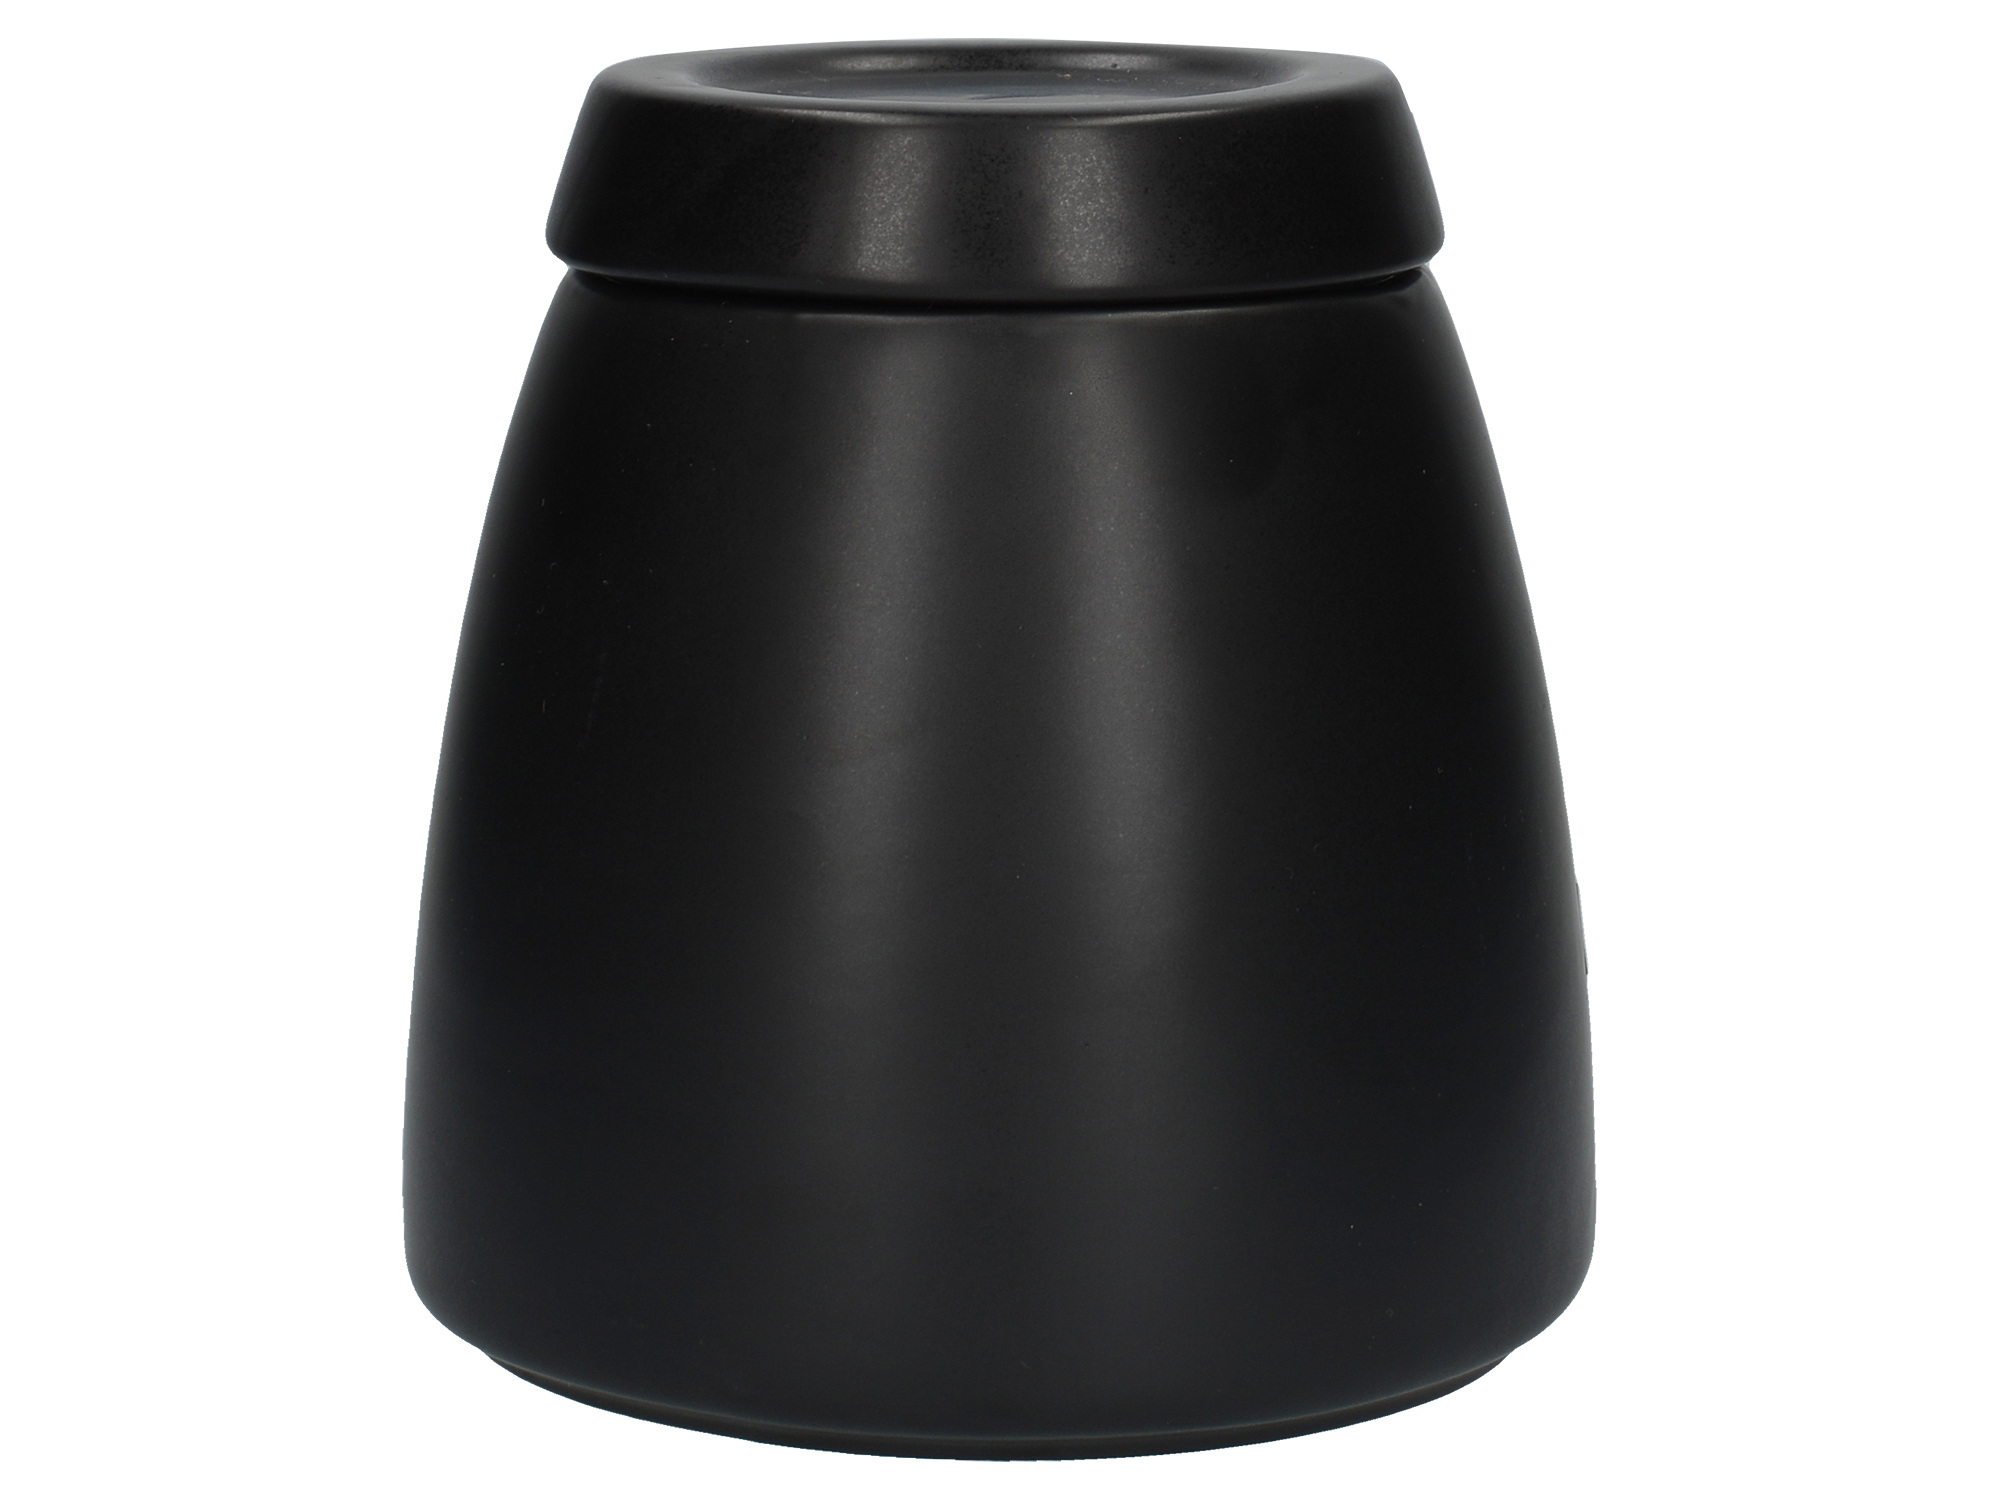 La Cafetiere Barcelona Storage Jar Black